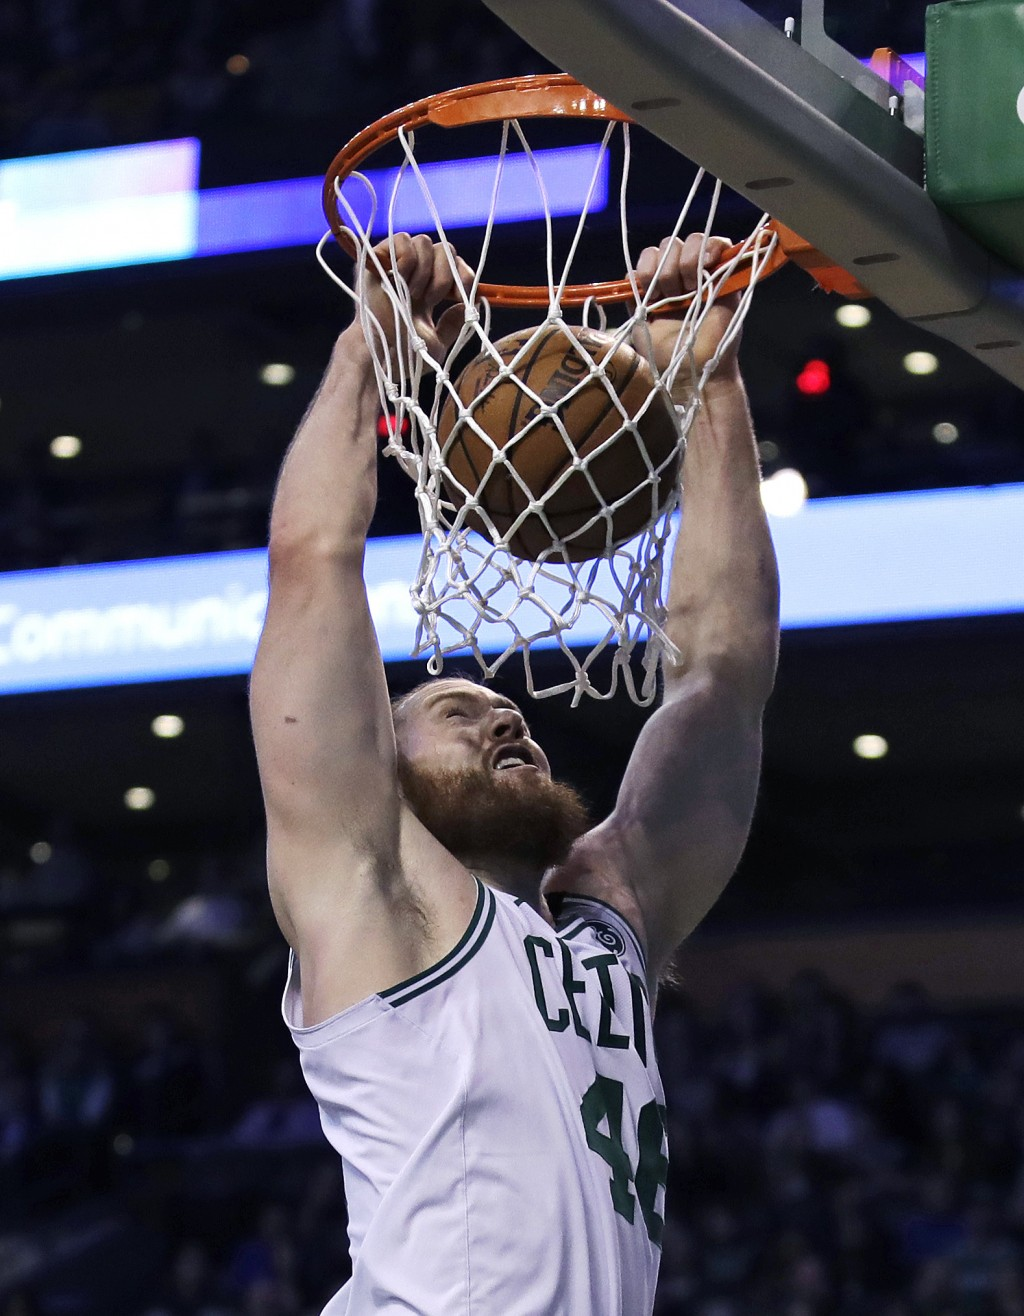 Boston Celtics center Aron Baynes dunks during the first quarter of the team's NBA basketball game against the Los Angeles Clippers in Boston, Wednesd